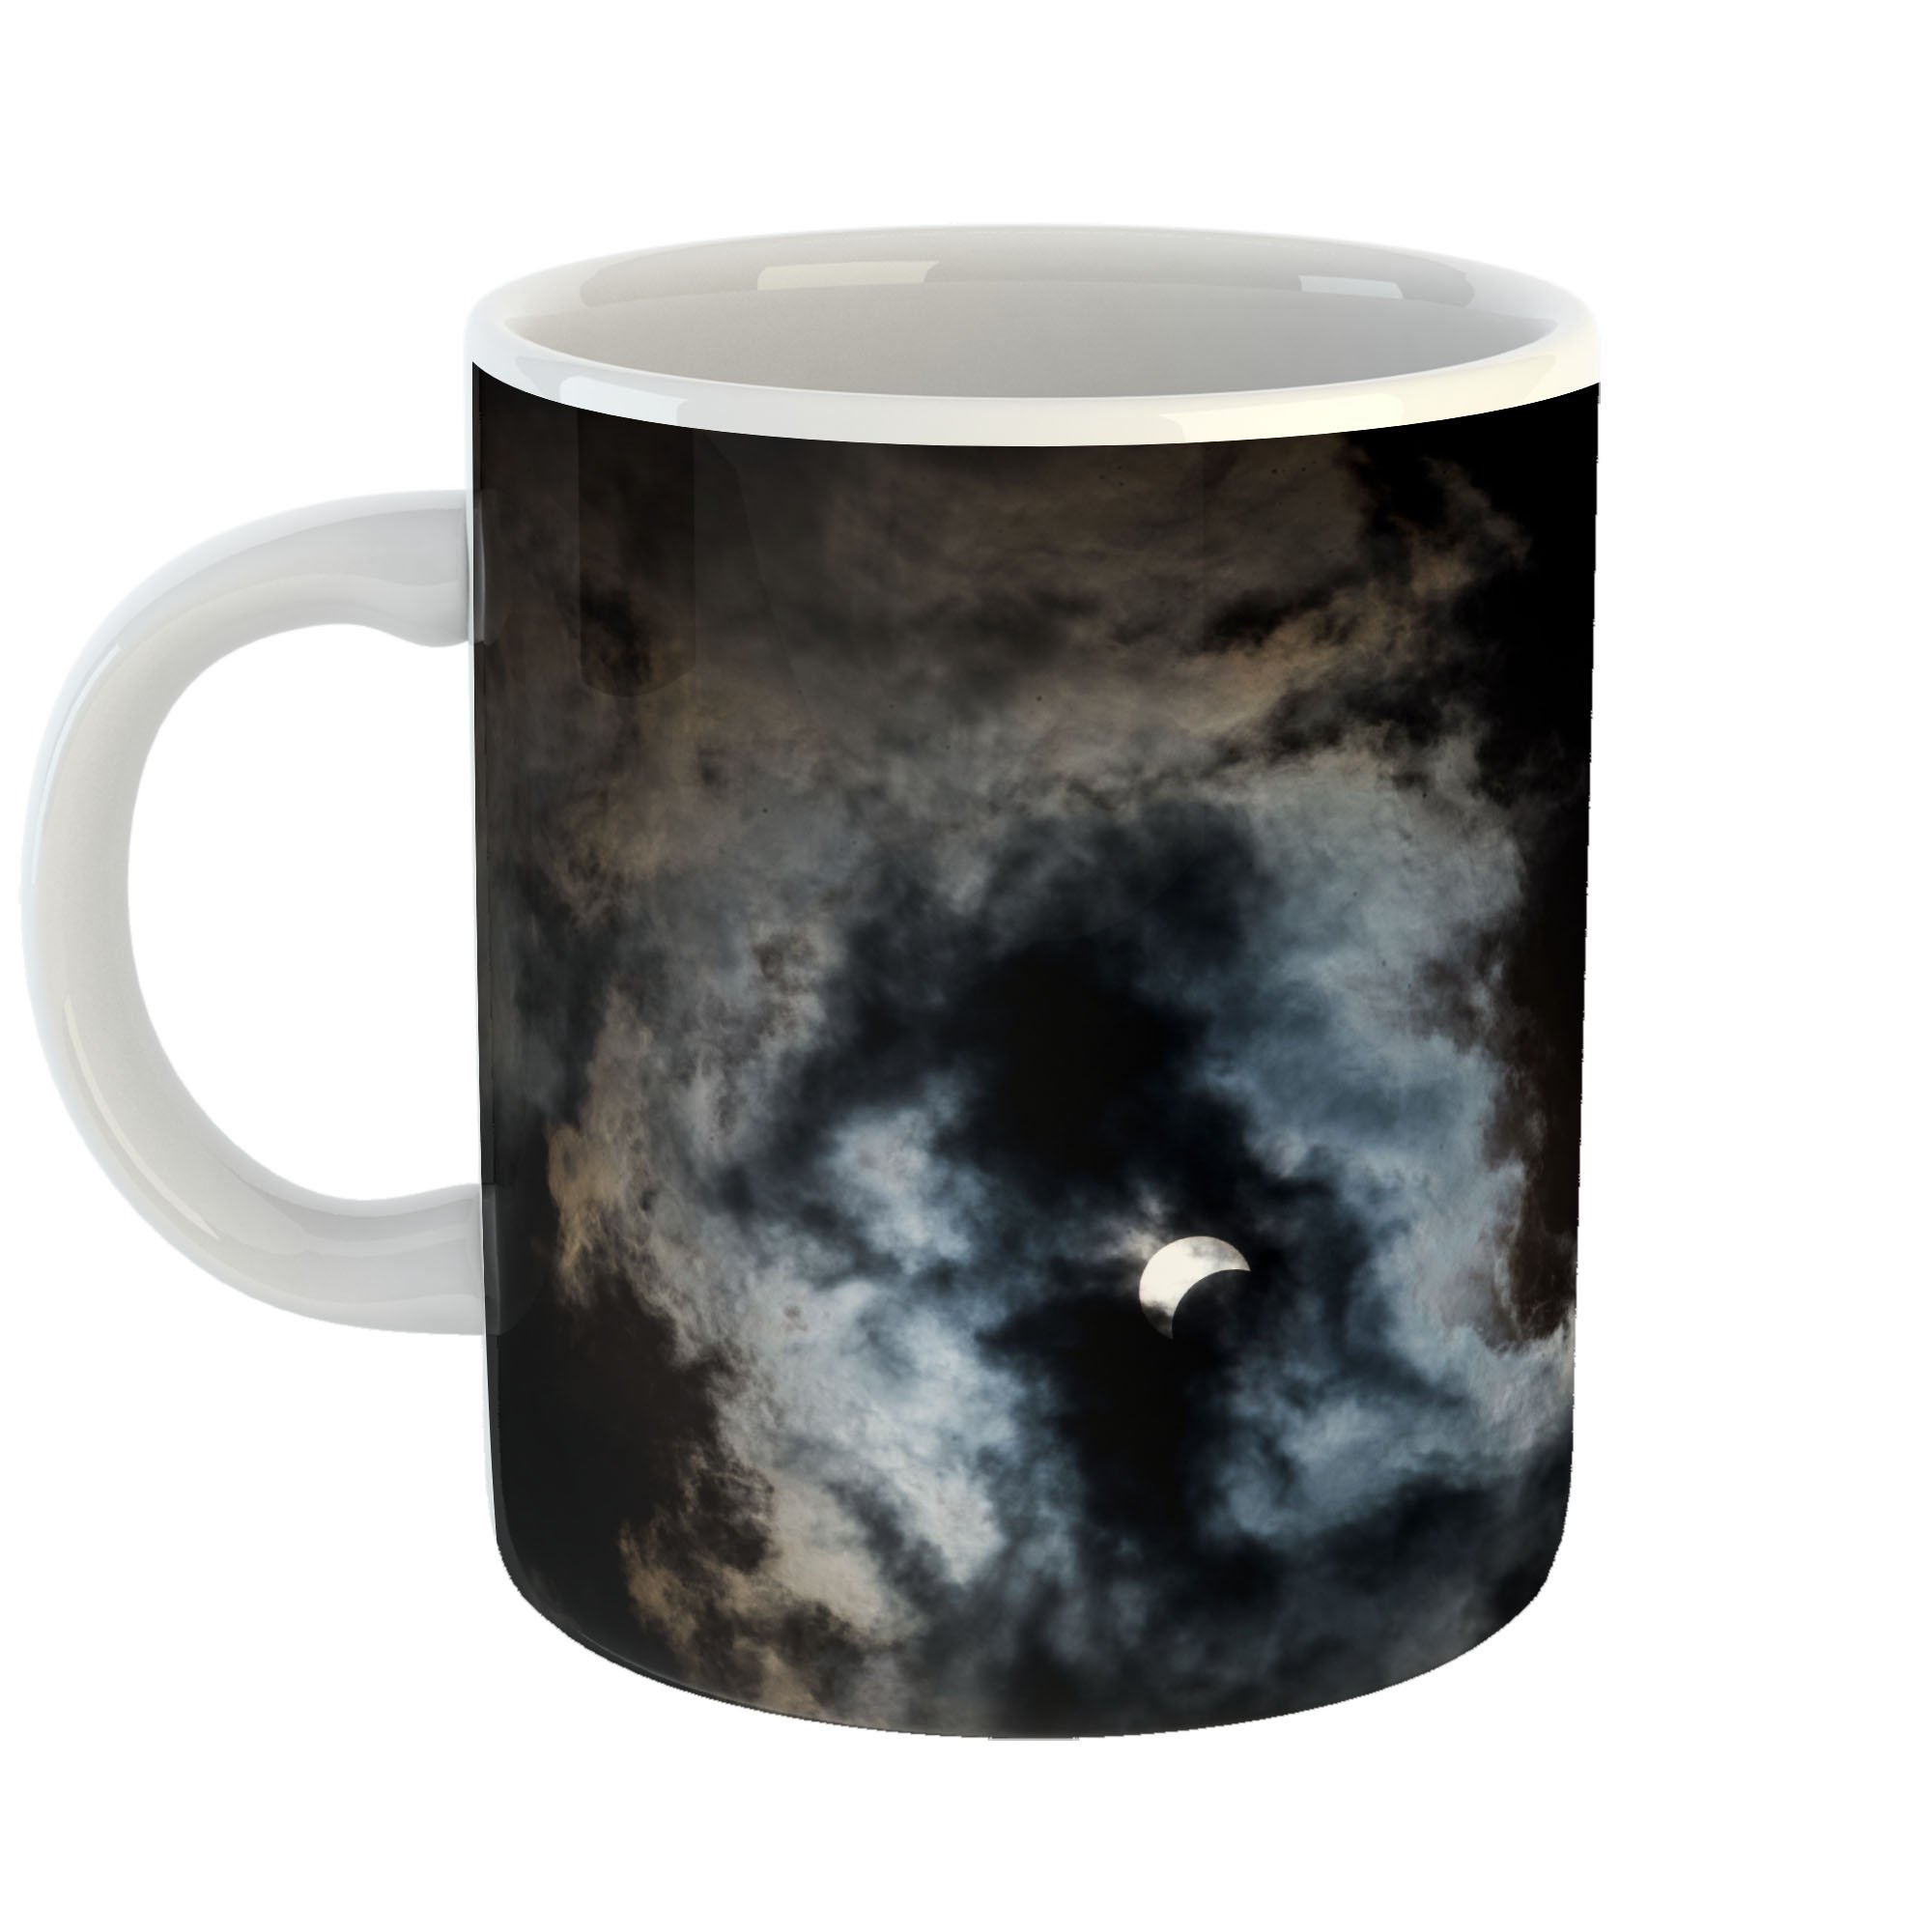 Westlake Art - Solar Clouds - 11oz Coffee Cup Mug - Modern Picture Photography Artwork Home Office Birthday Gift - 11 Ounce (4D40-F4439)